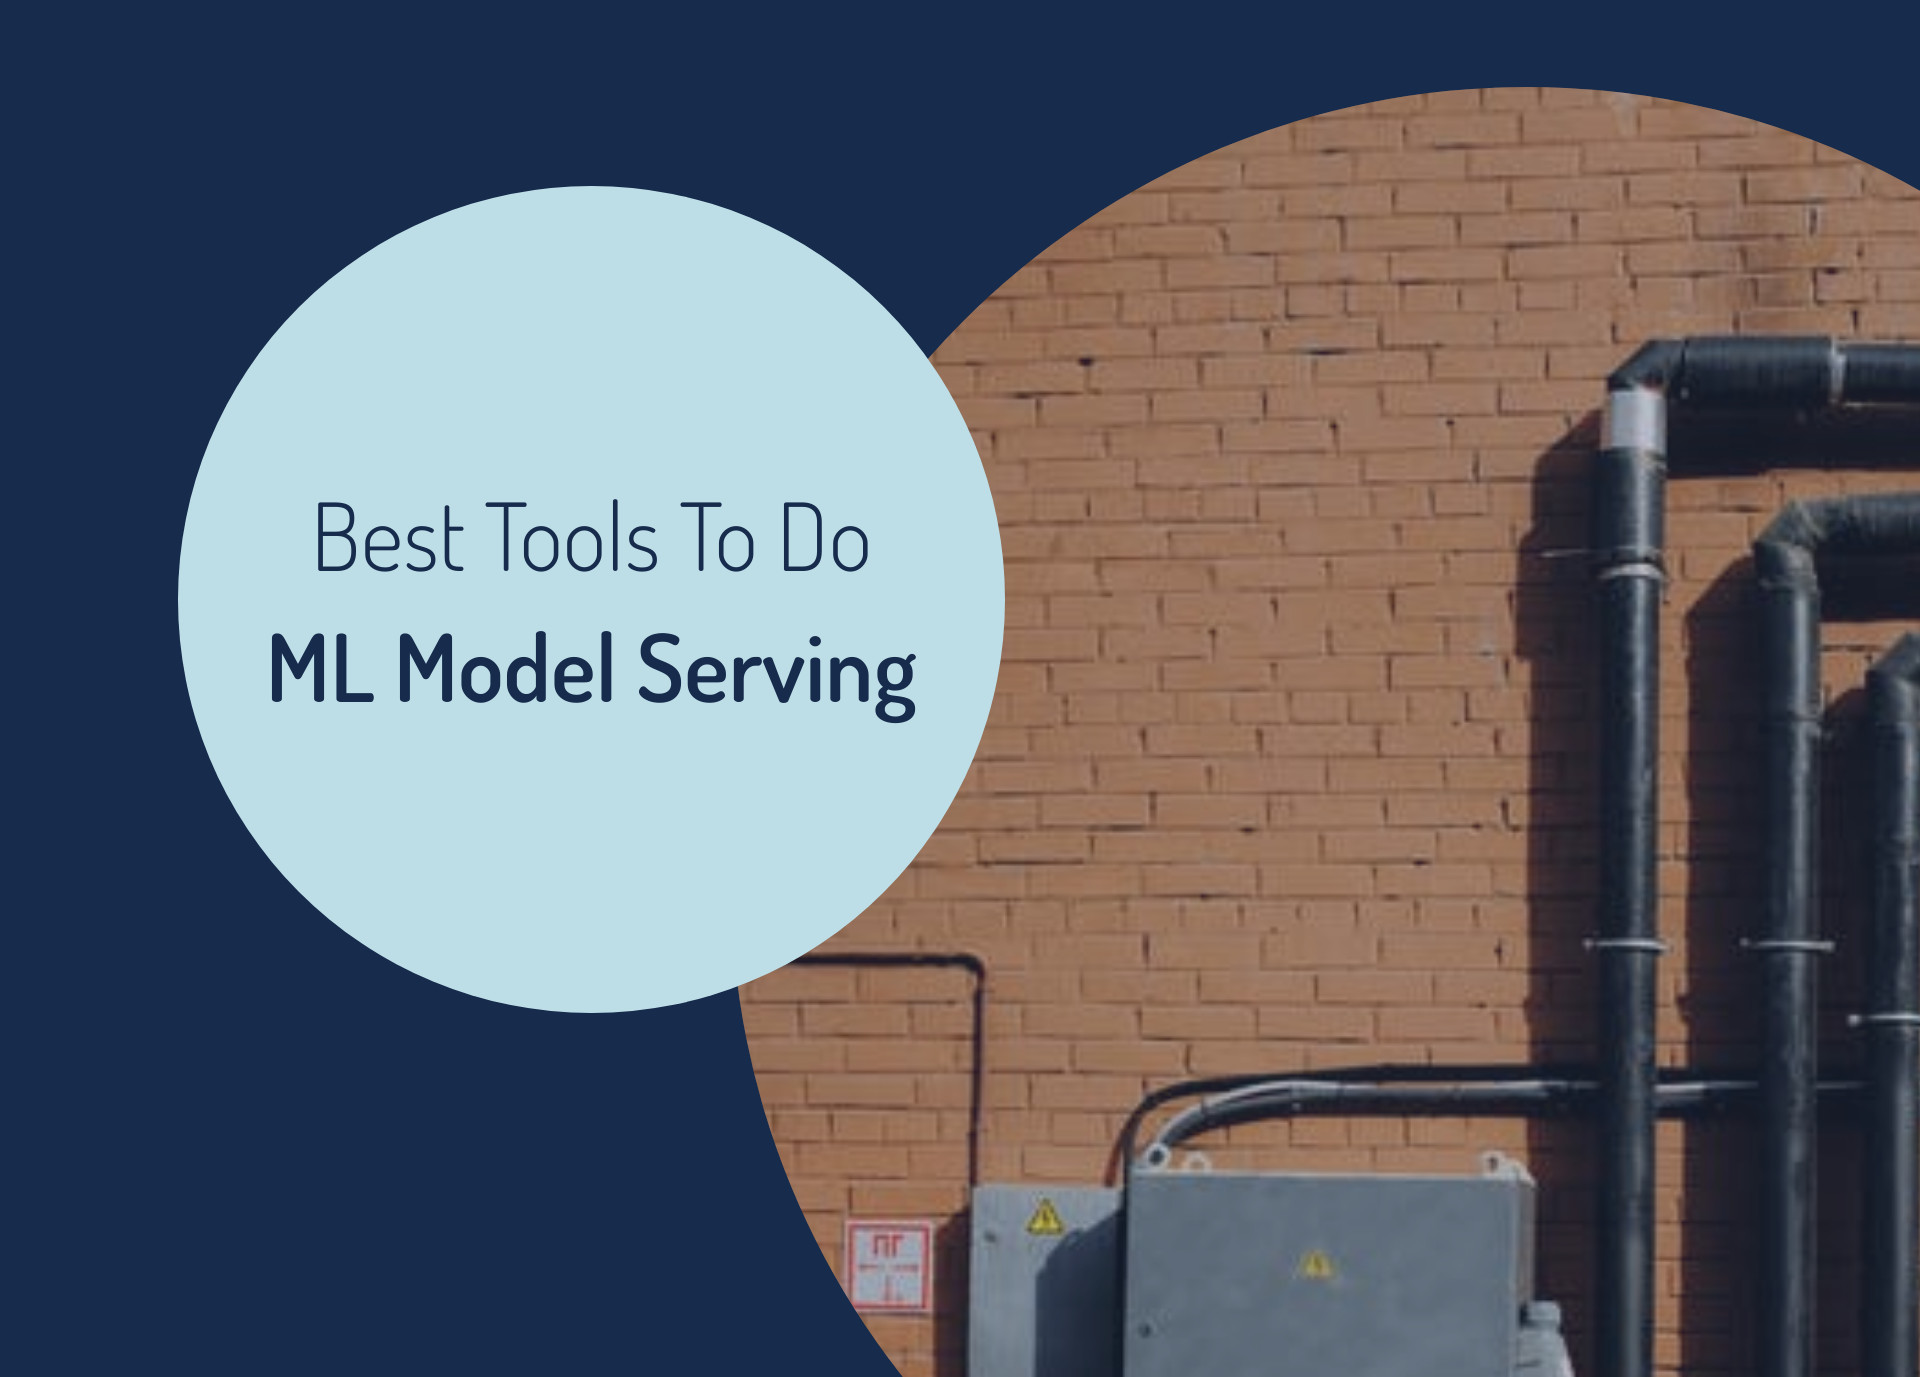 Best Tools To Do ML Model Serving